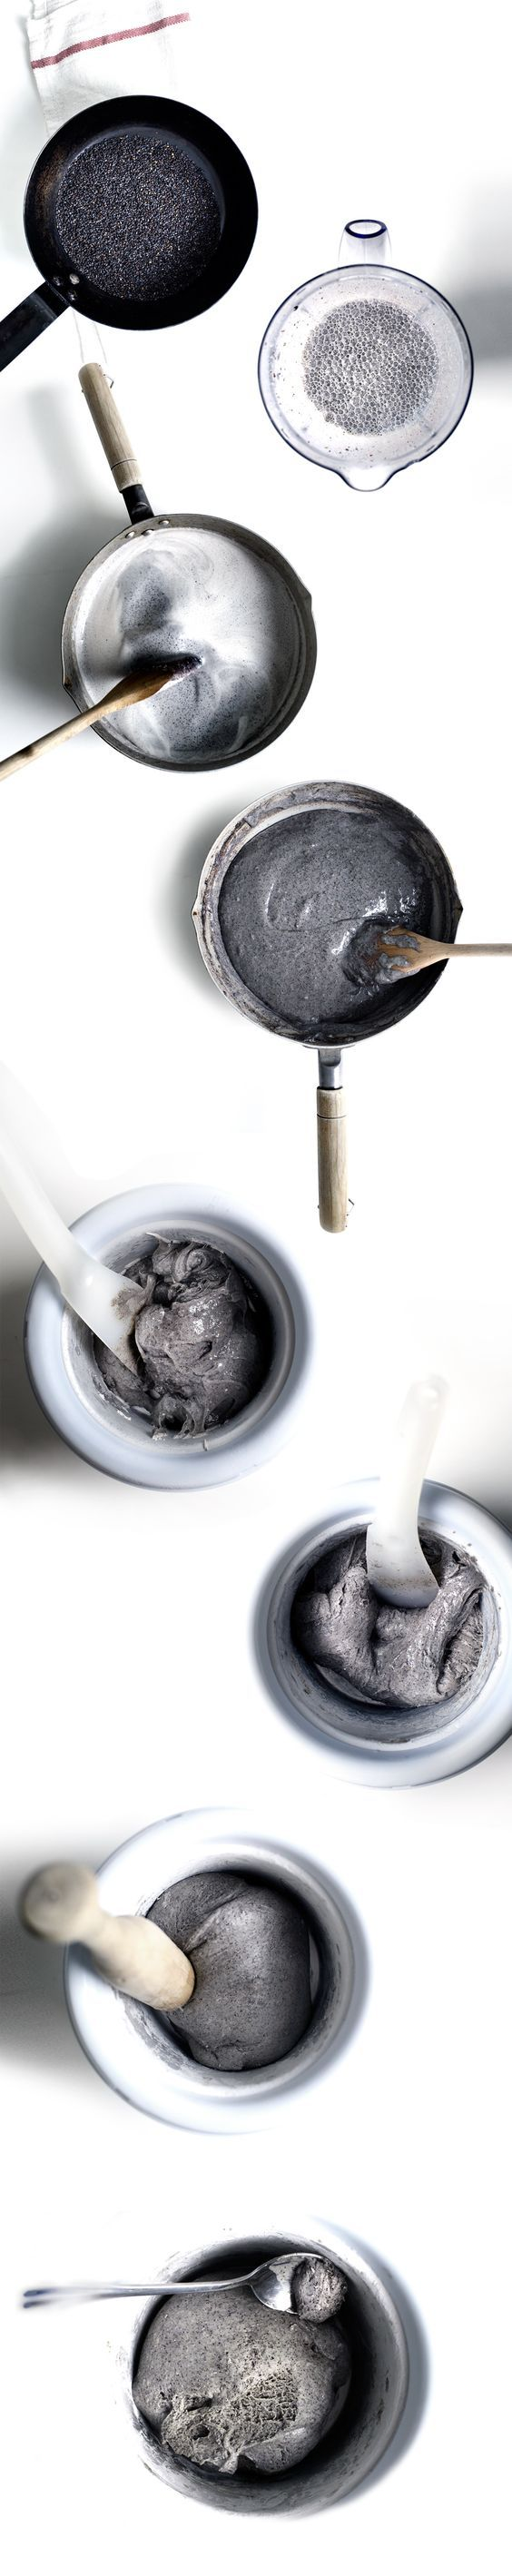 Have you ever seen a more classy ice cream color? Black Mochi Ice Cream looks beyond sophisticated! | Lady & Pups food blog